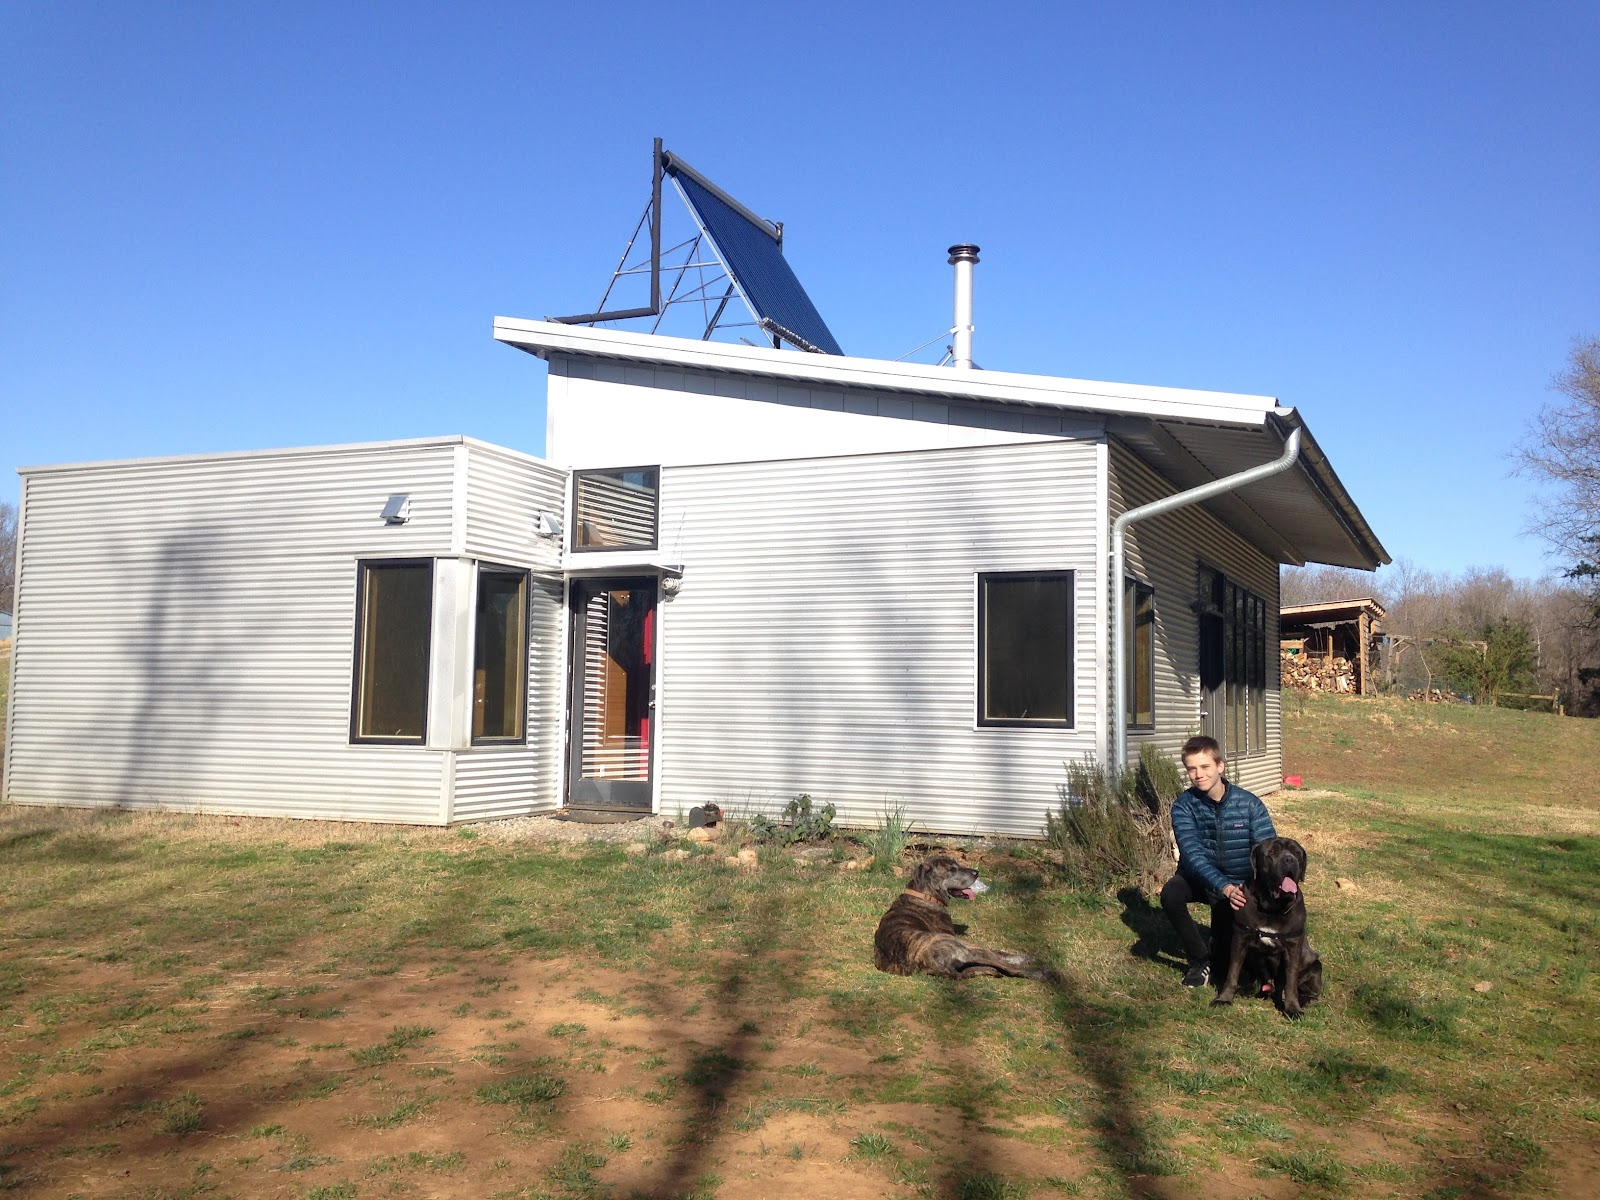 Modern Prefab House Kit News And At The Off Grid Prefab